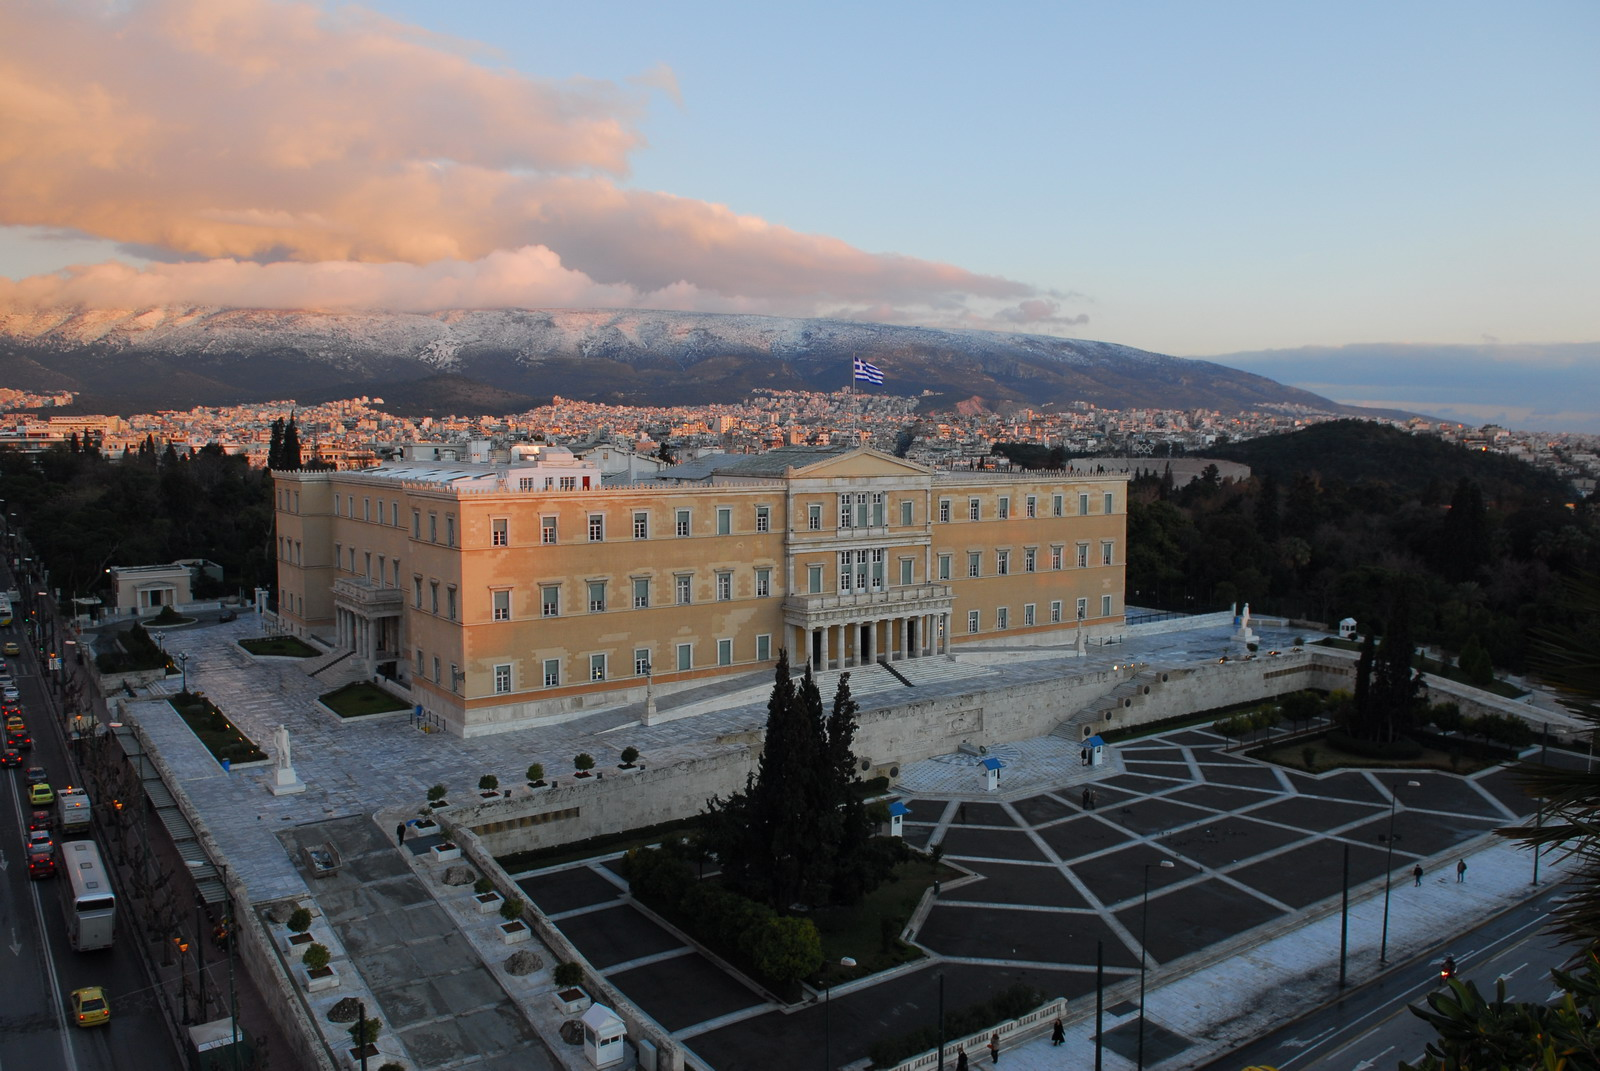 Hellenic_Parliament_from_high_above.jpg